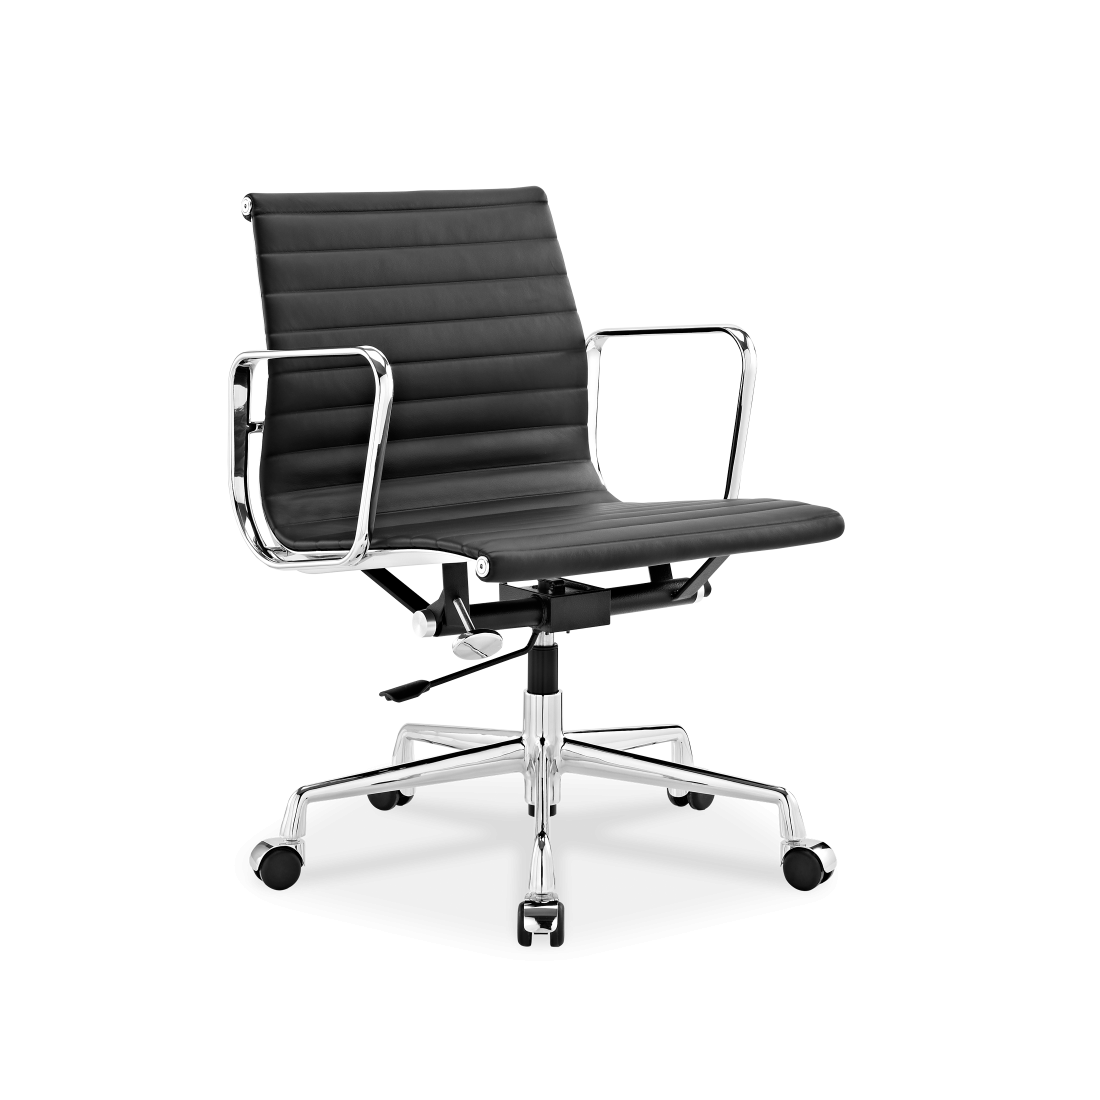 Eames Replica Replica Eames Office Chair